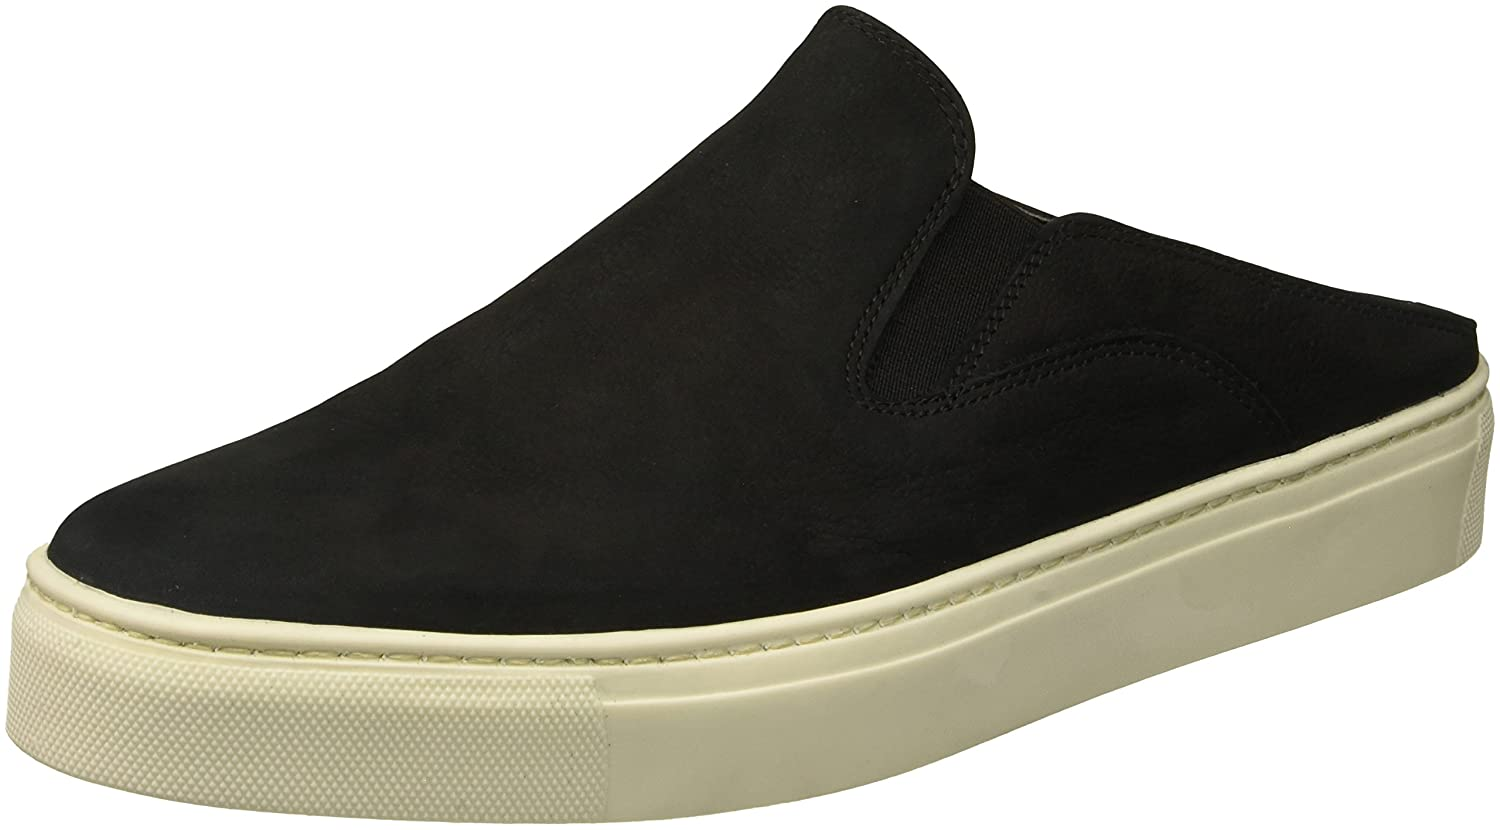 The FLEXX Women's Slideways Sneaker B074G2YKRN 5.5 B(M) US|Black Dakar